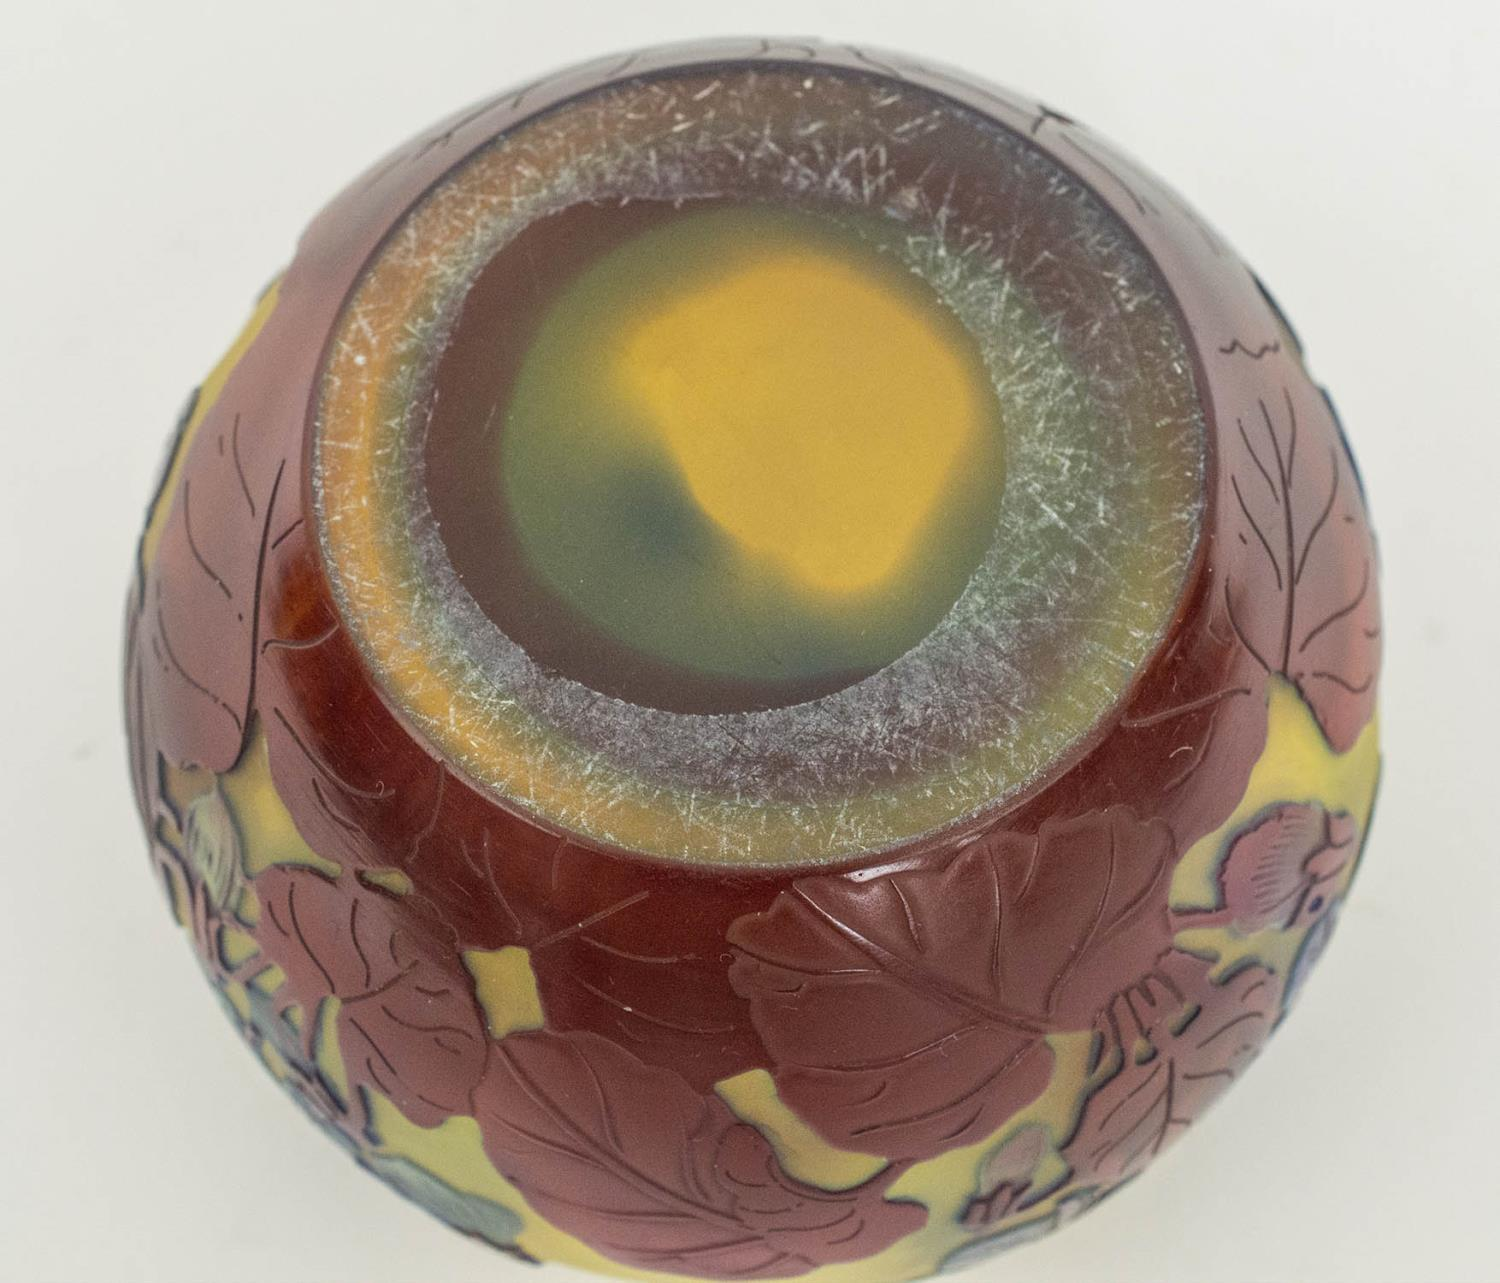 BOWL, Emile Galle Cameo glass, having subtle light blue and amethyst tones with foliate pattern, 8cm - Image 6 of 6